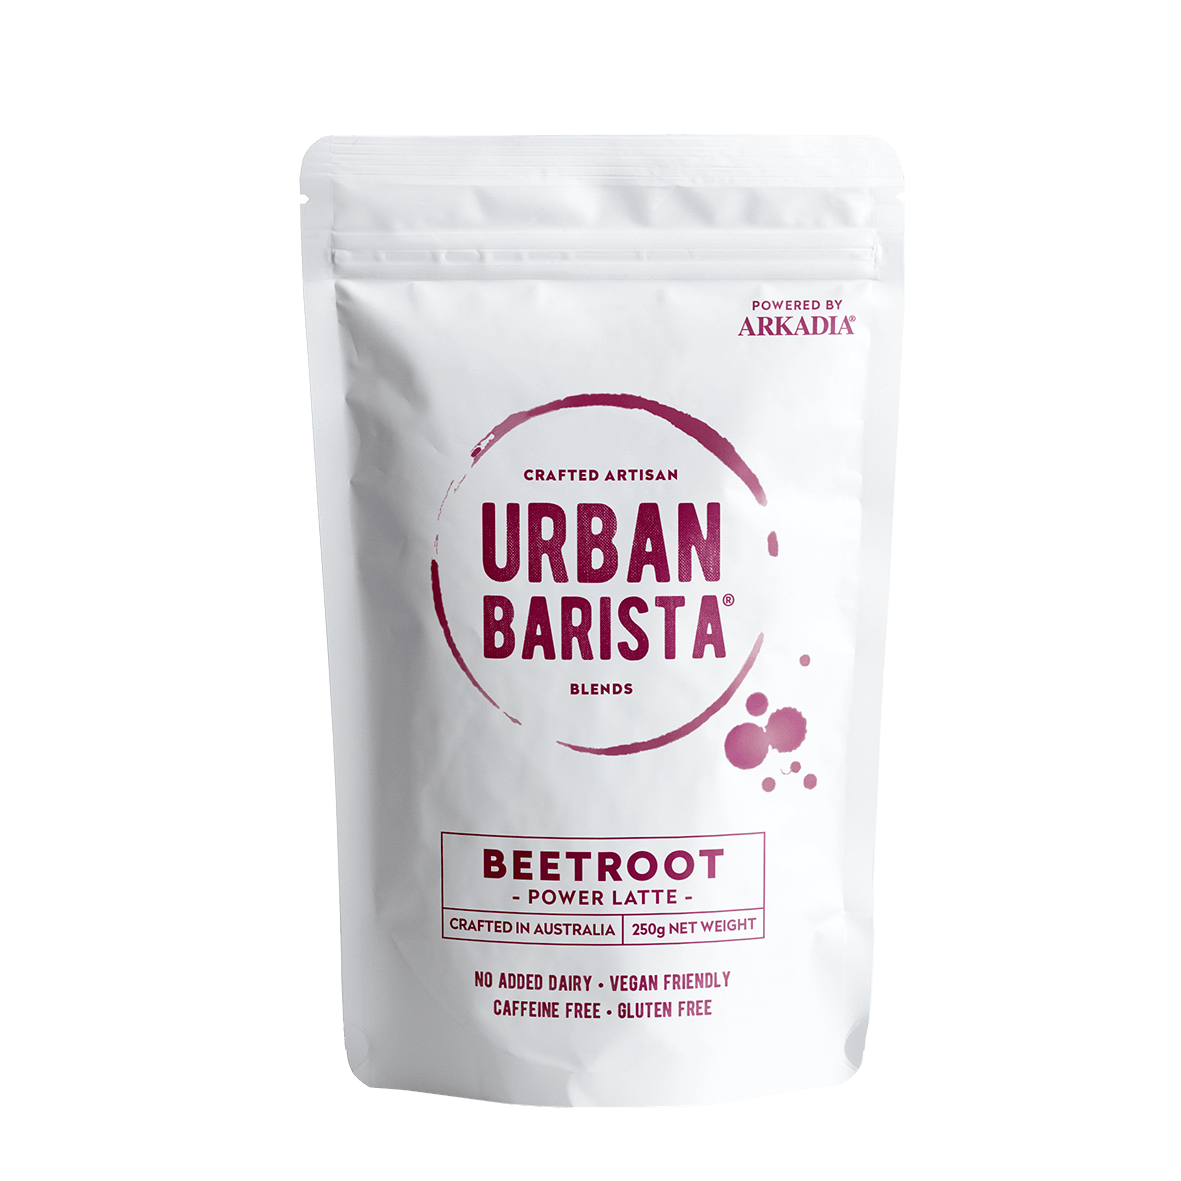 Urban Barista Beetroot Latte